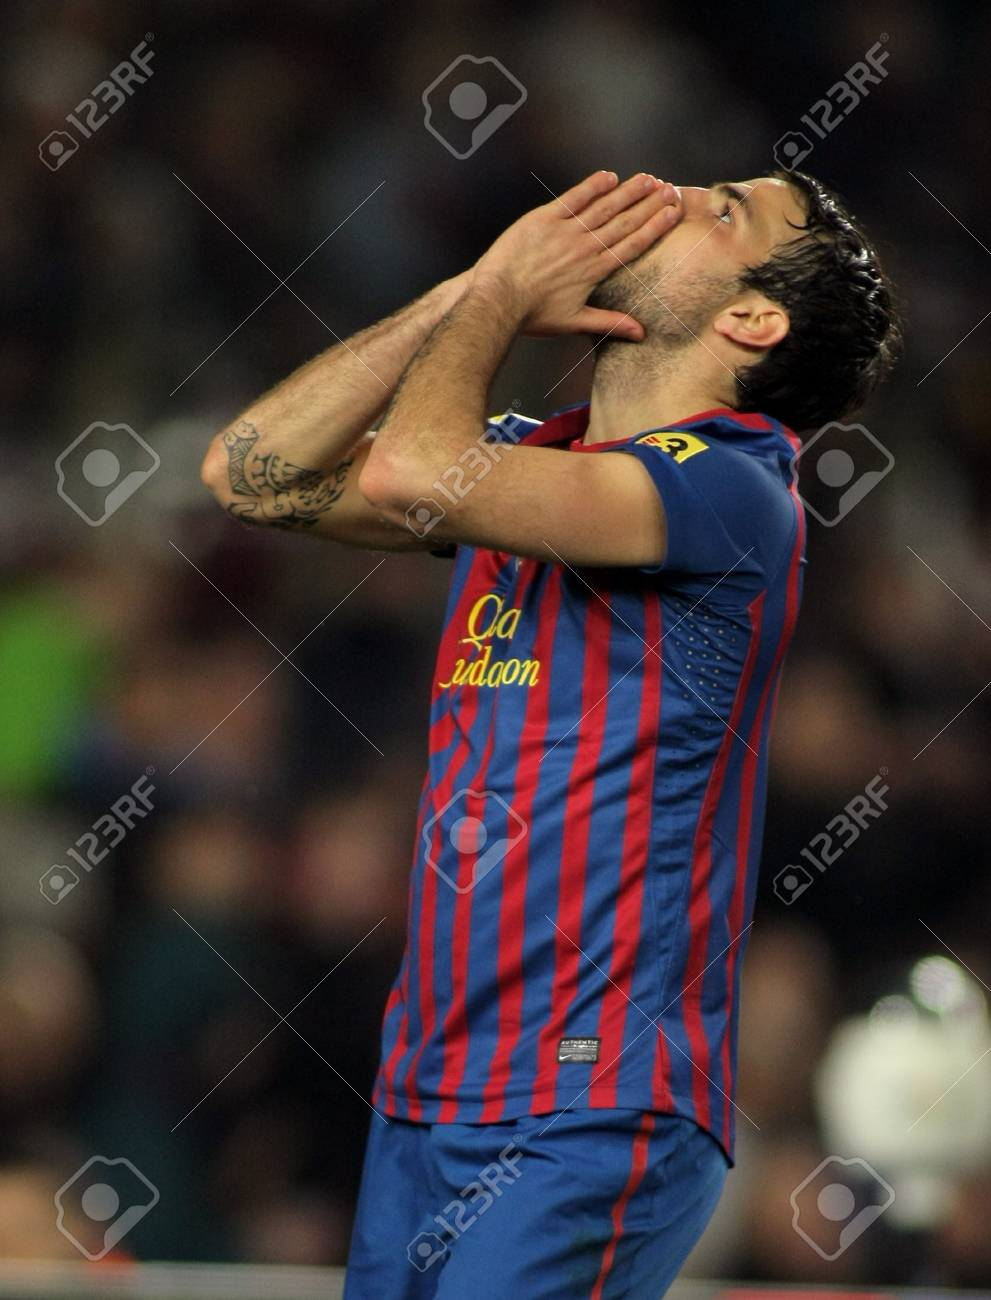 Cesc Fabregas of FC Barcelona in action during the Spanish league match against Valencia CF  at the Camp Nou stadium on February 19, 2012 in Barcelona, Spain Stock Photo - 13022511